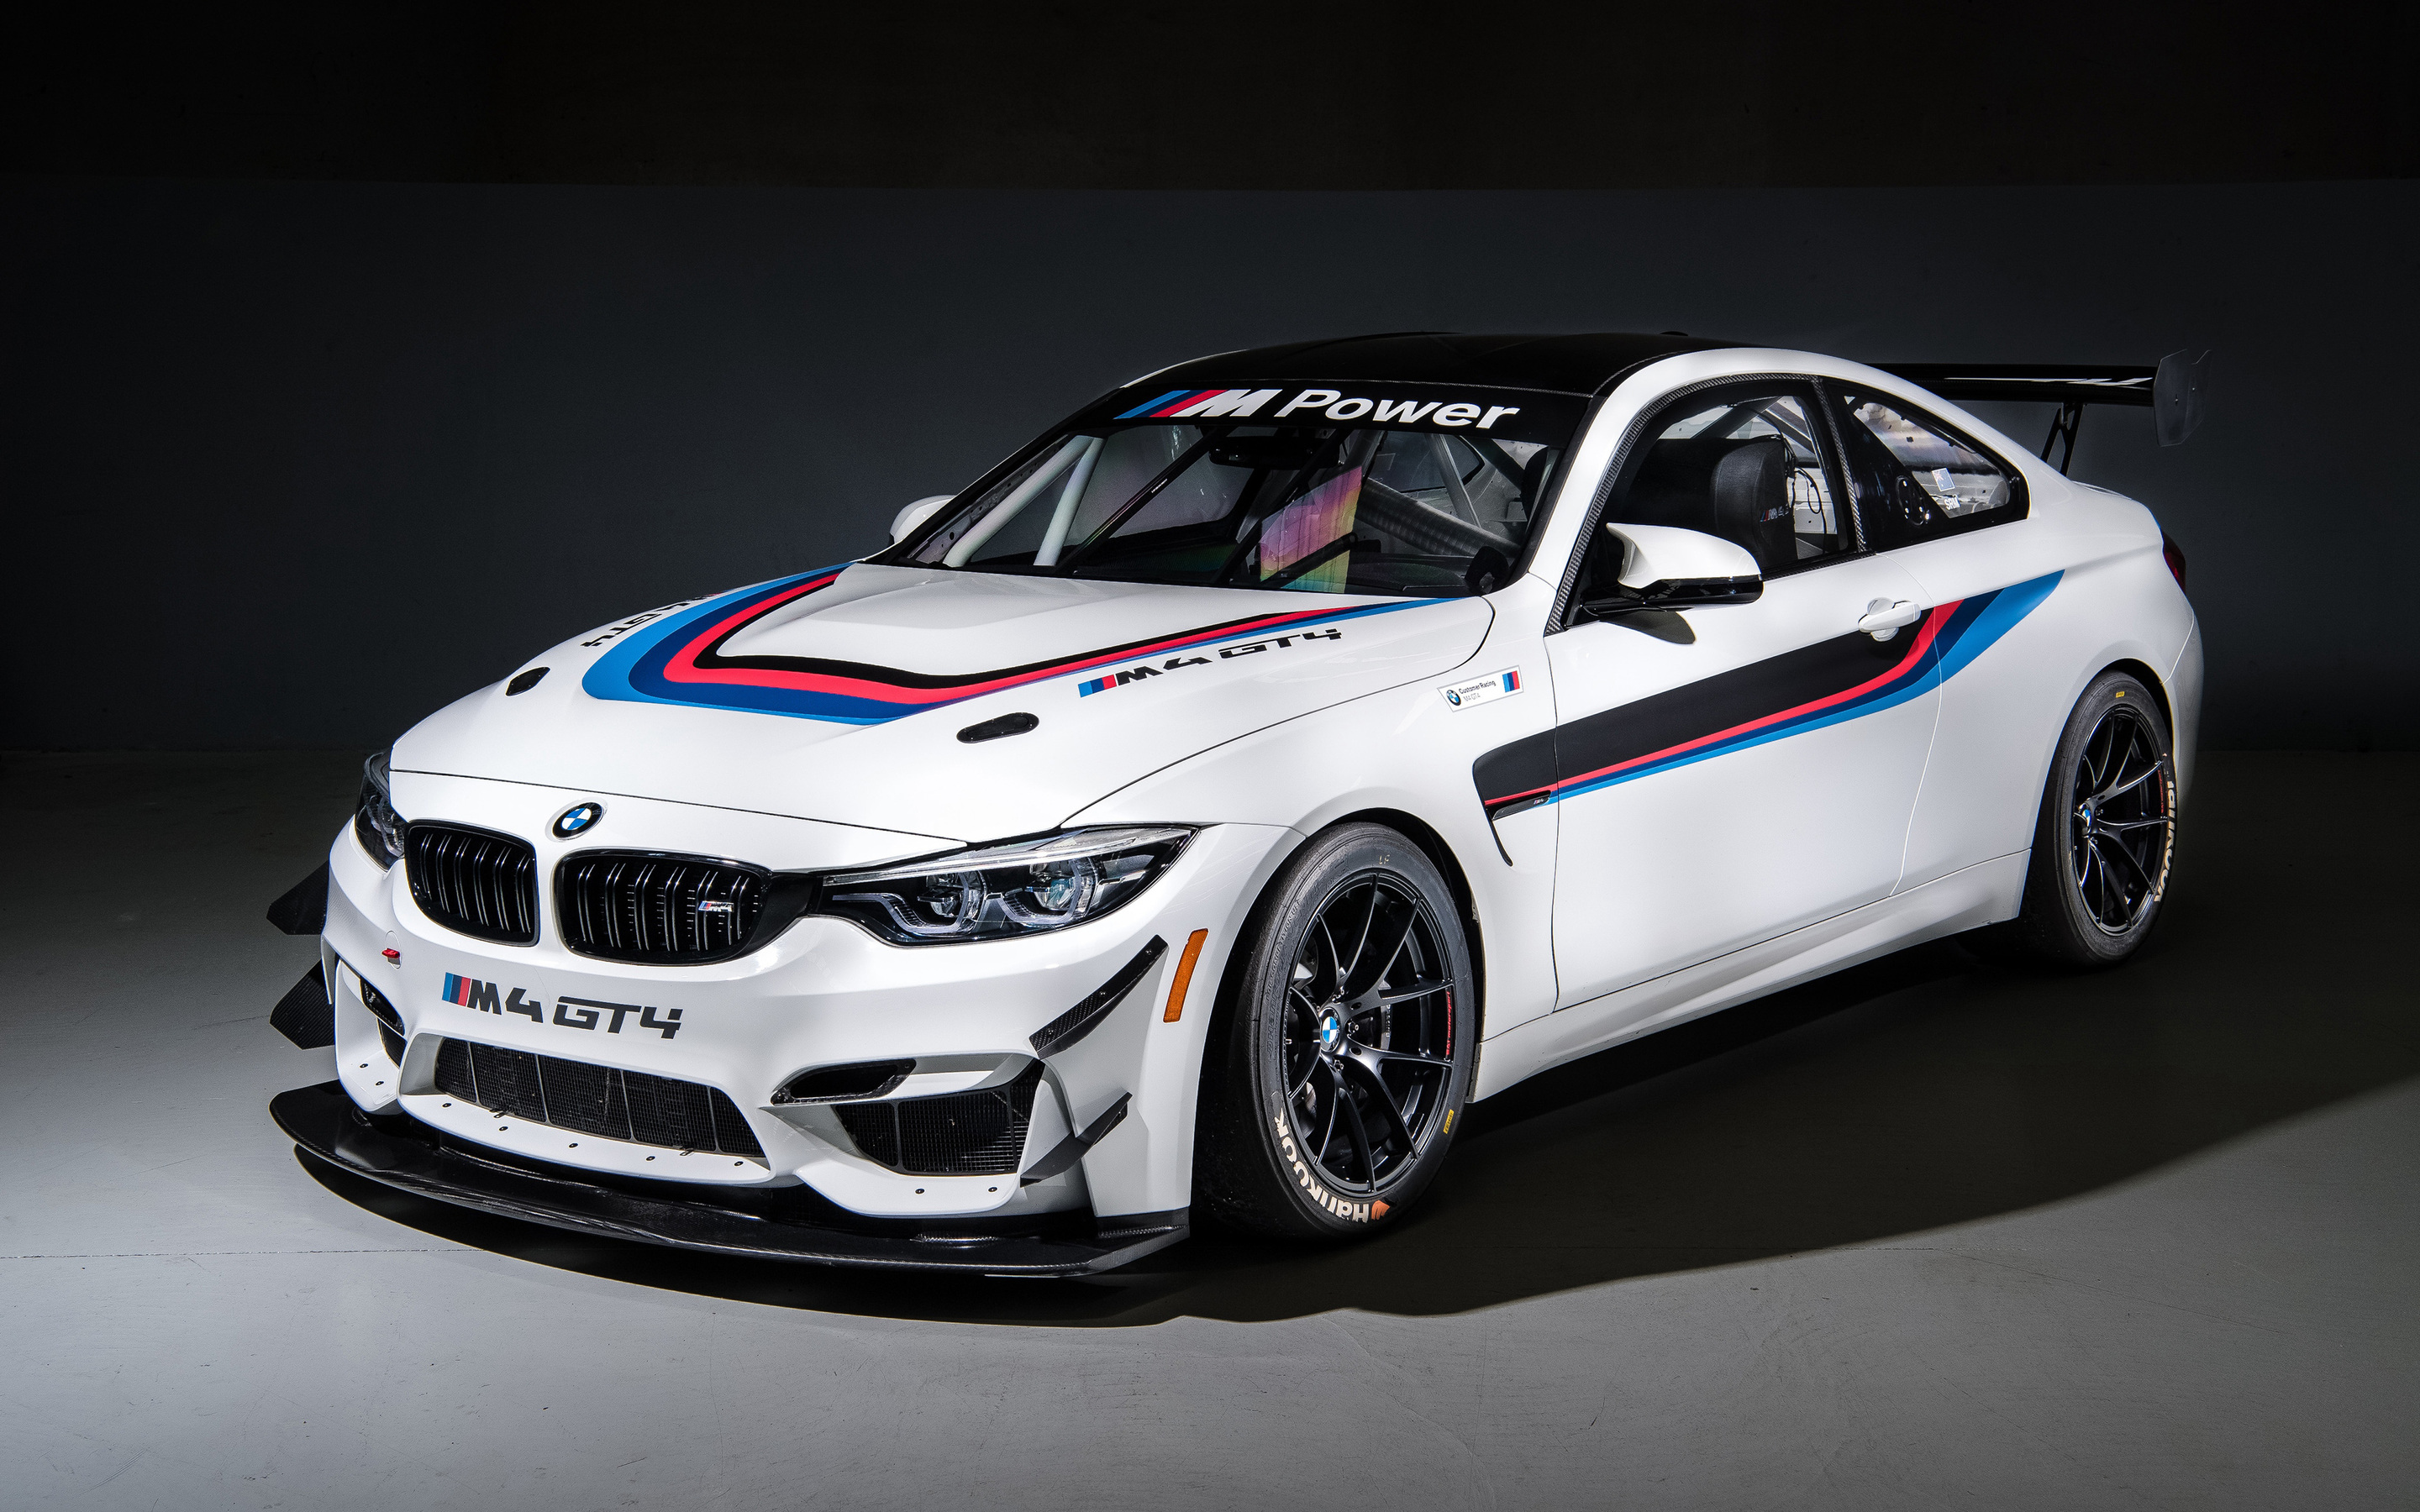 2880x1800 Bmw M4 Gt4 Macbook Pro Retina HD 4k Wallpapers ...